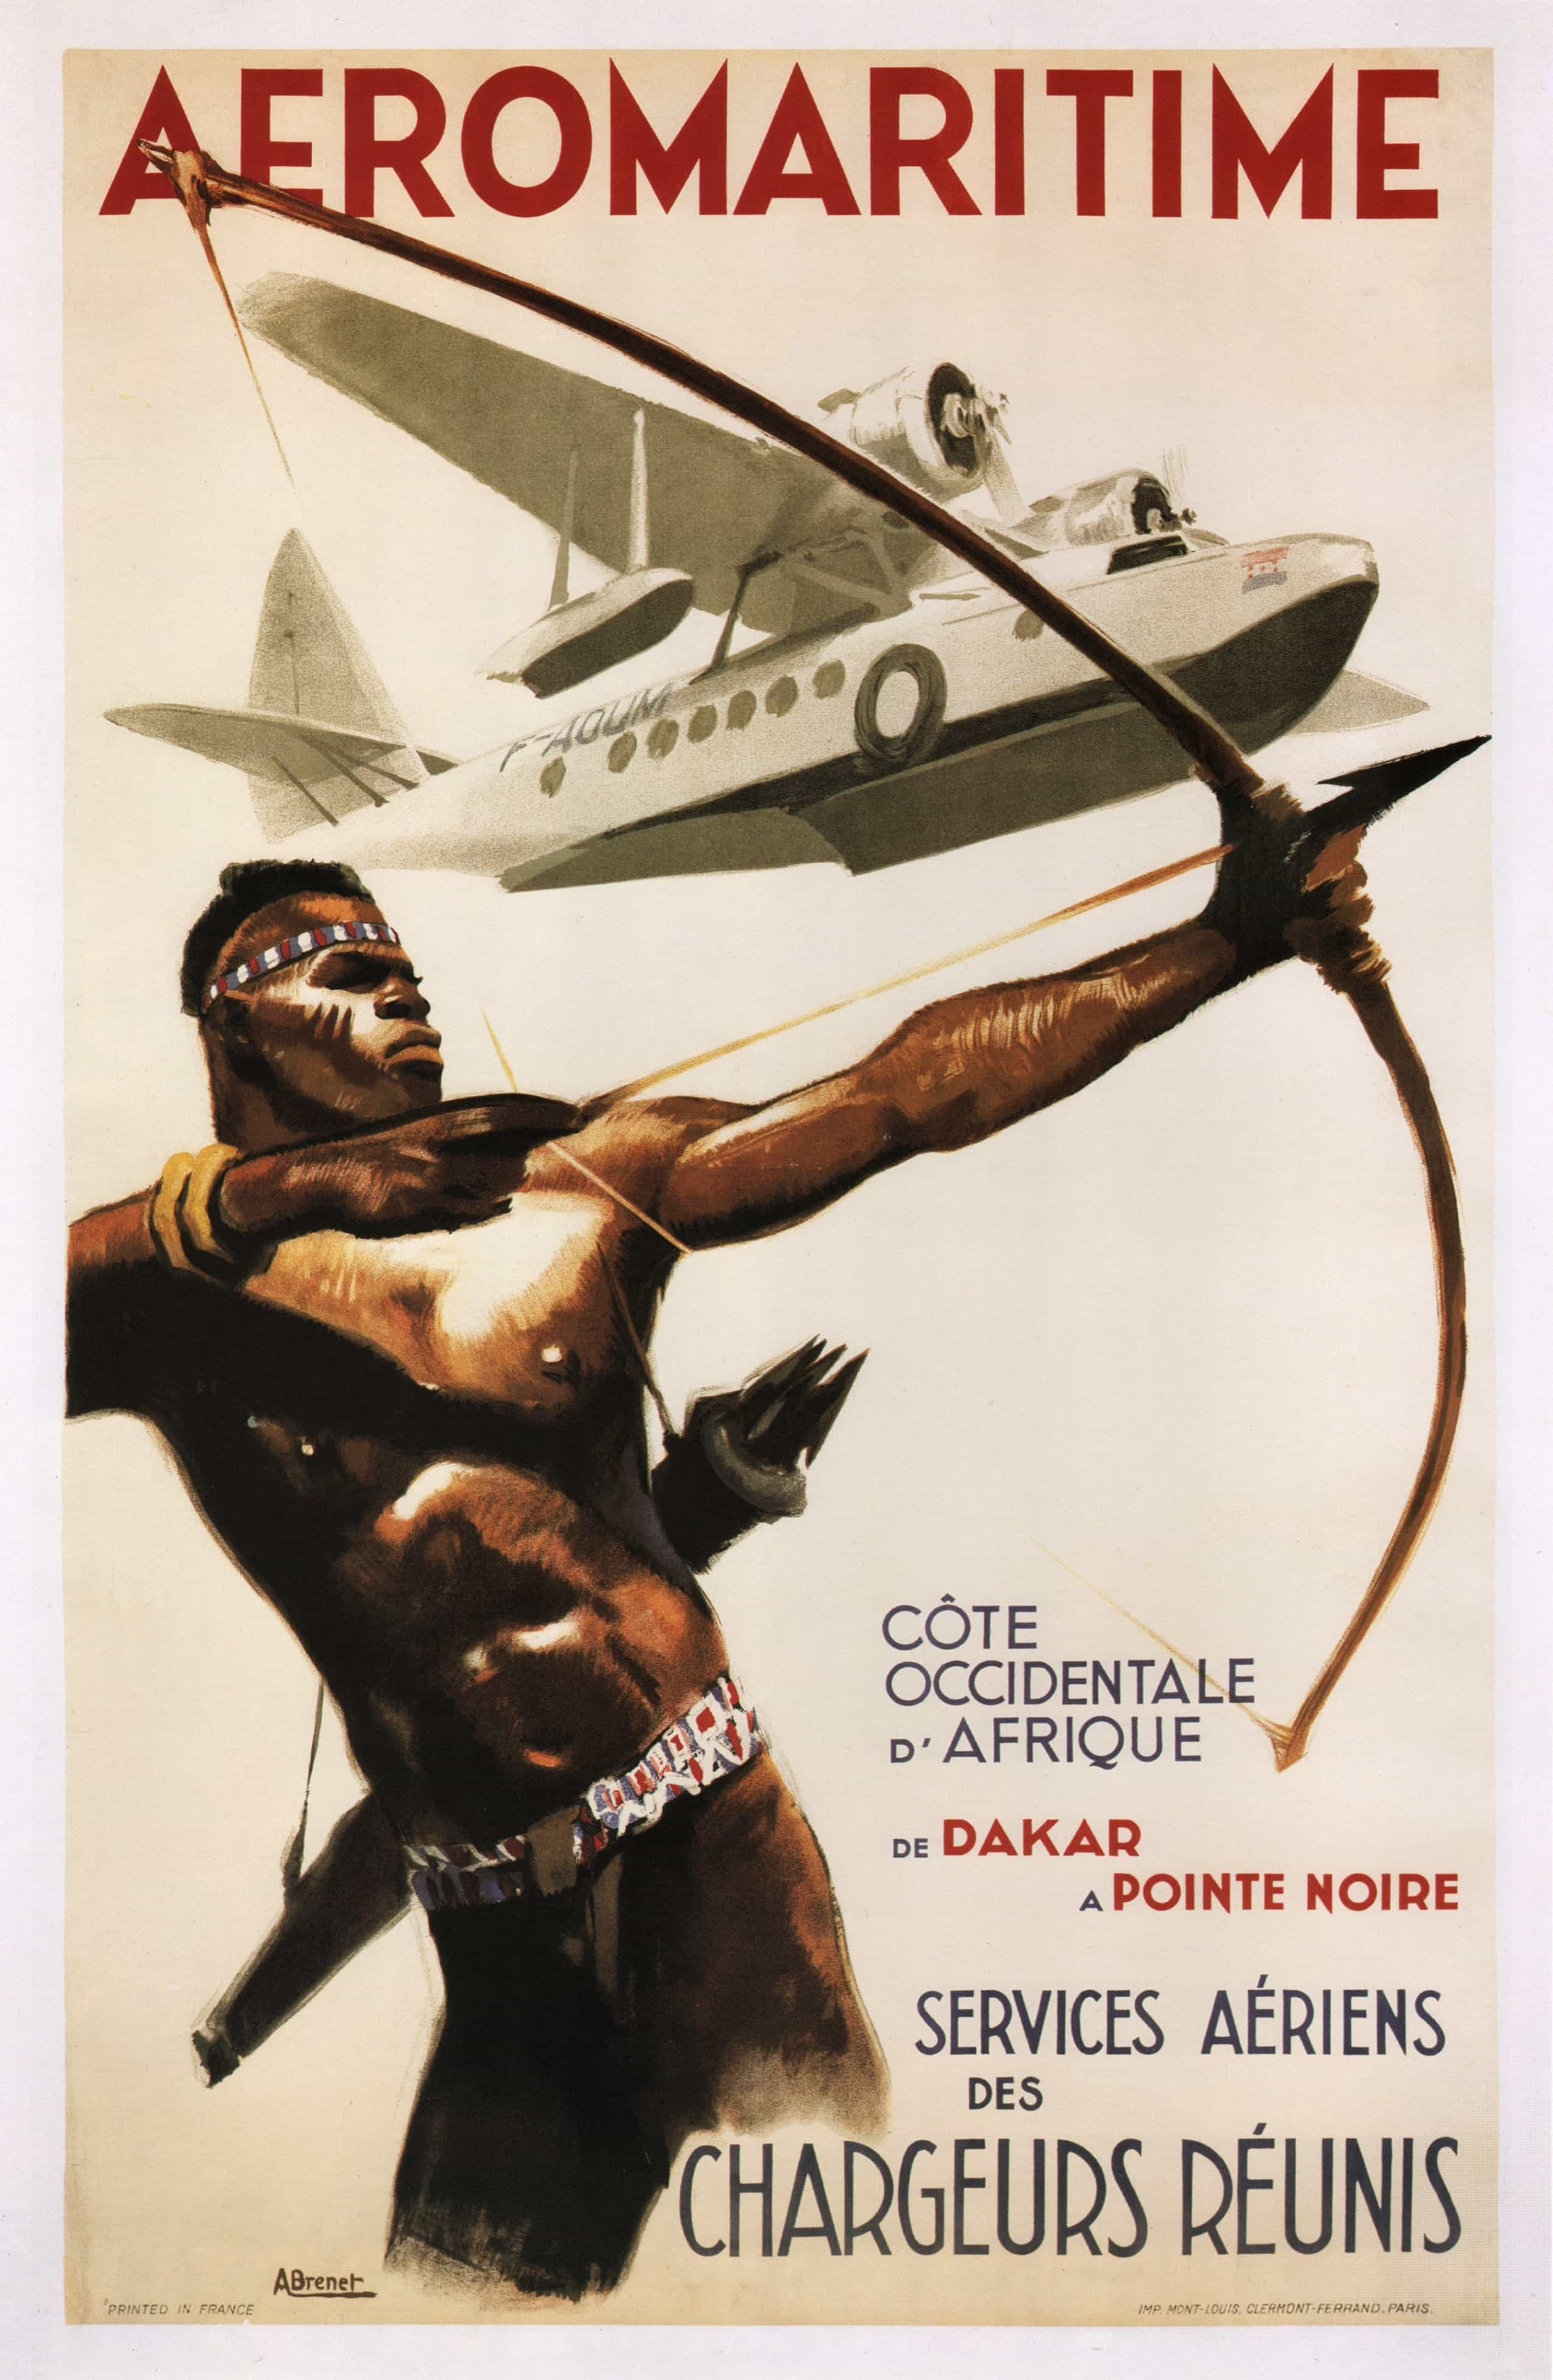 Vintage Airline Poster French African AEROMARITIME